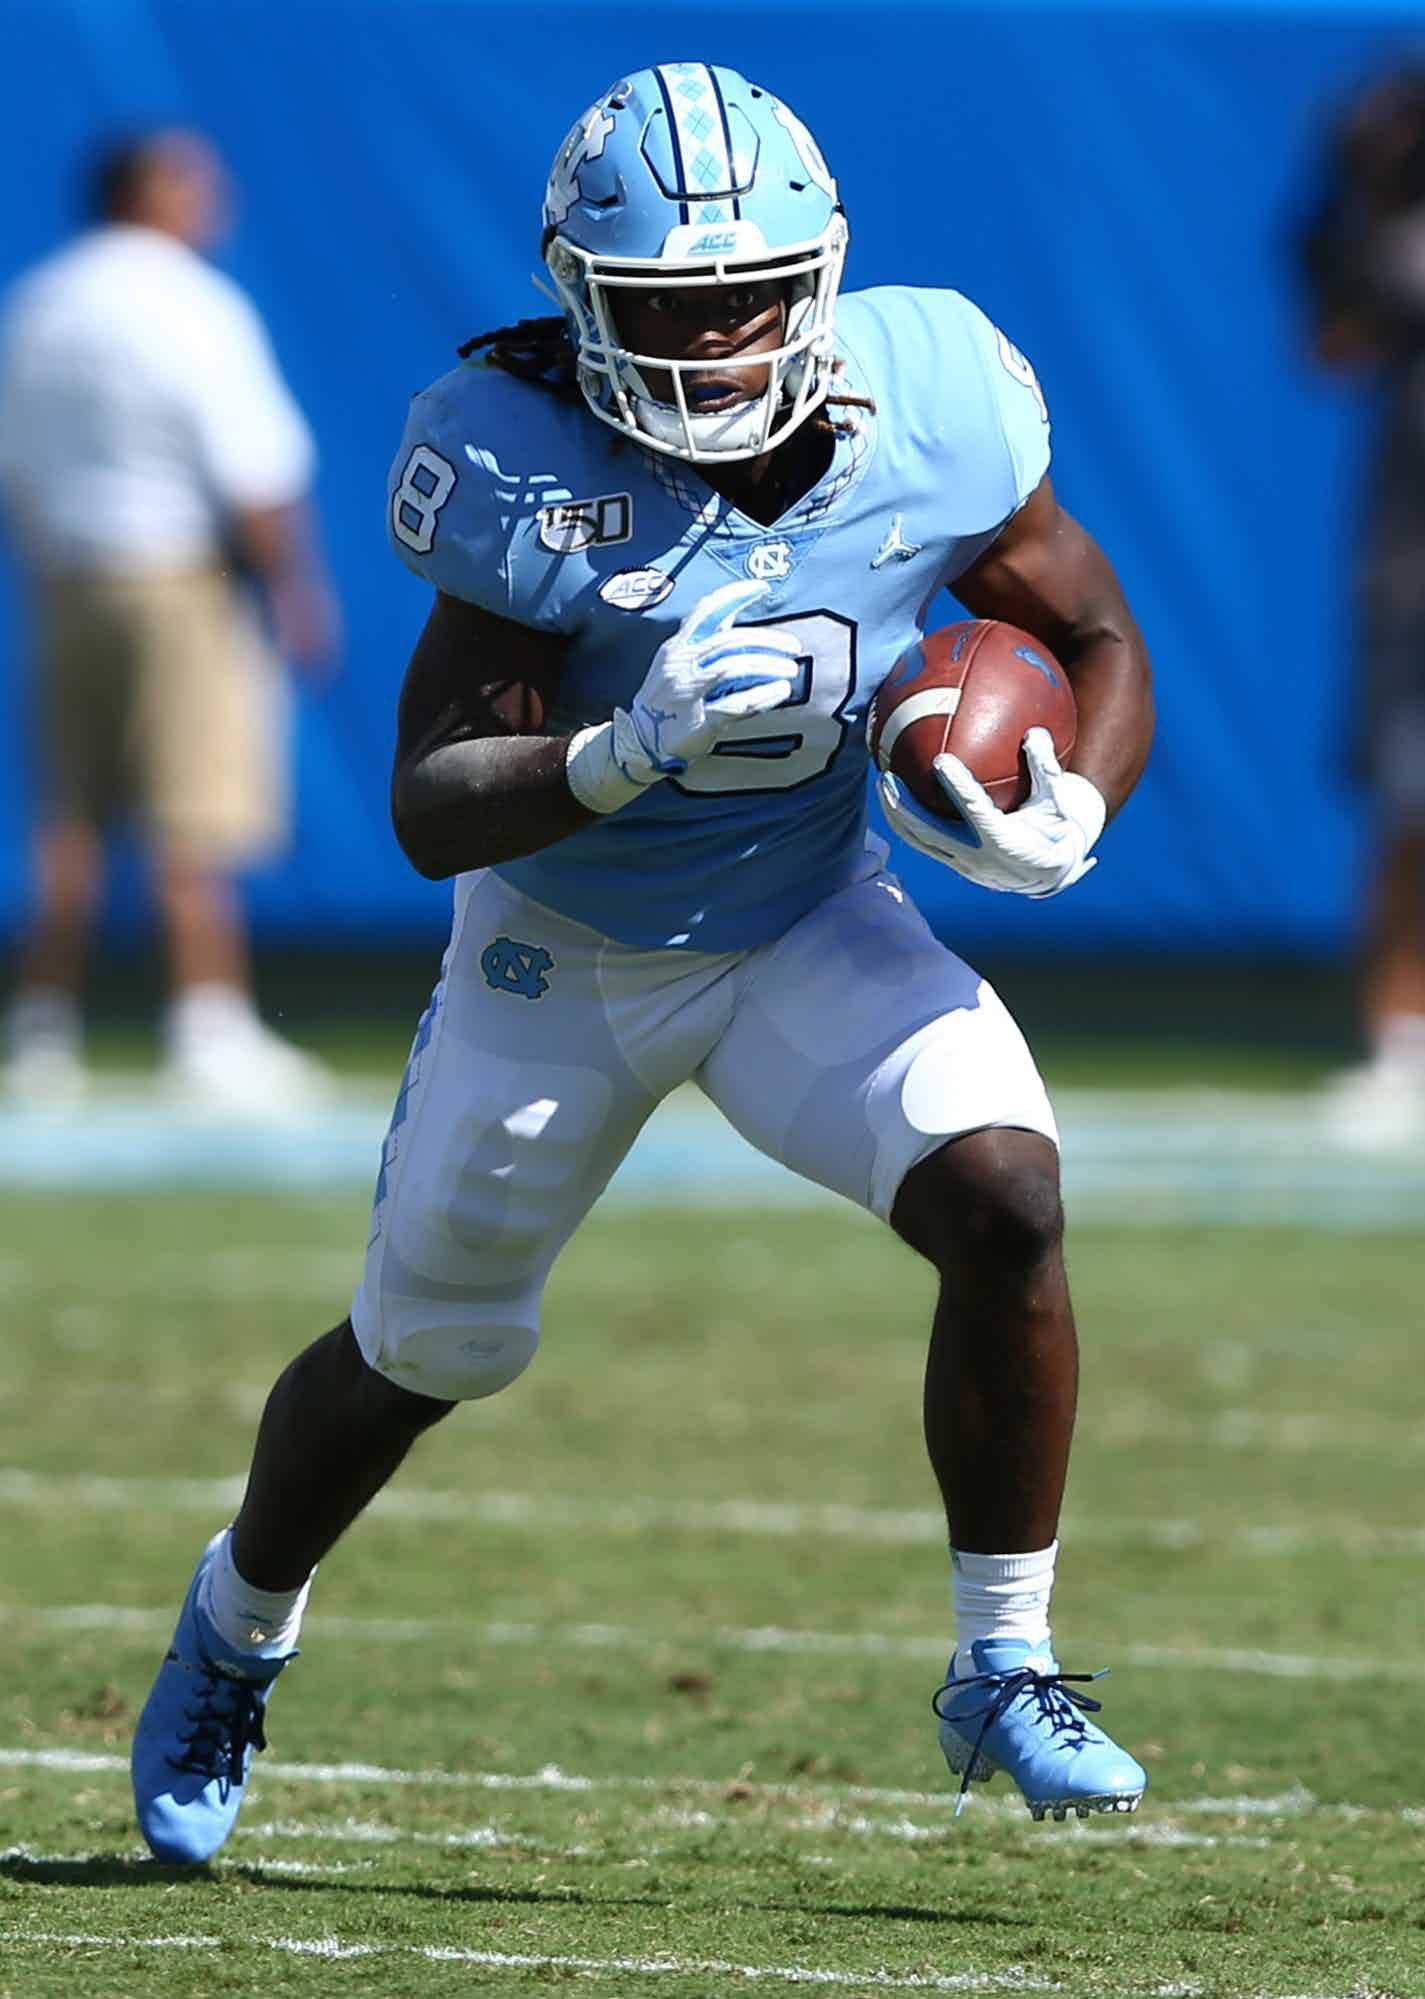 Pin by Doug Cameron on UNC Football 2019 (With images